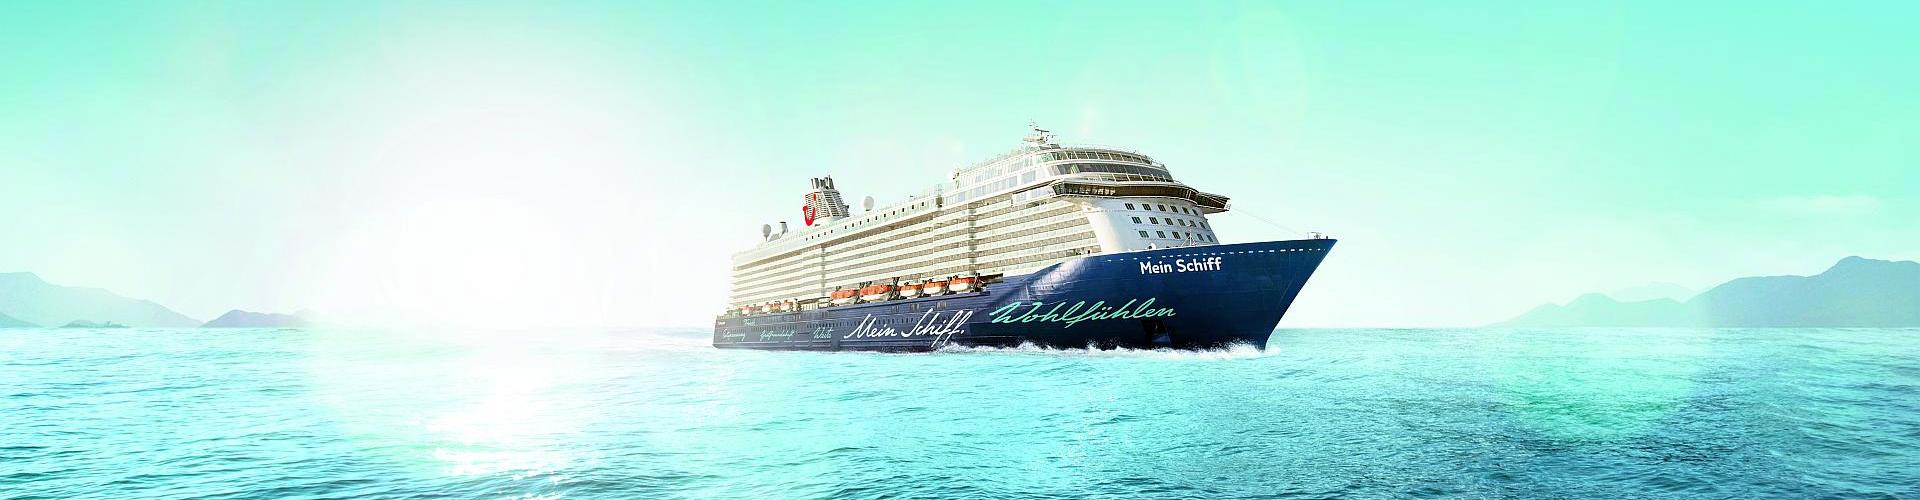 mein schiff kreuzfahrten tui cruises mein schiff 4. Black Bedroom Furniture Sets. Home Design Ideas